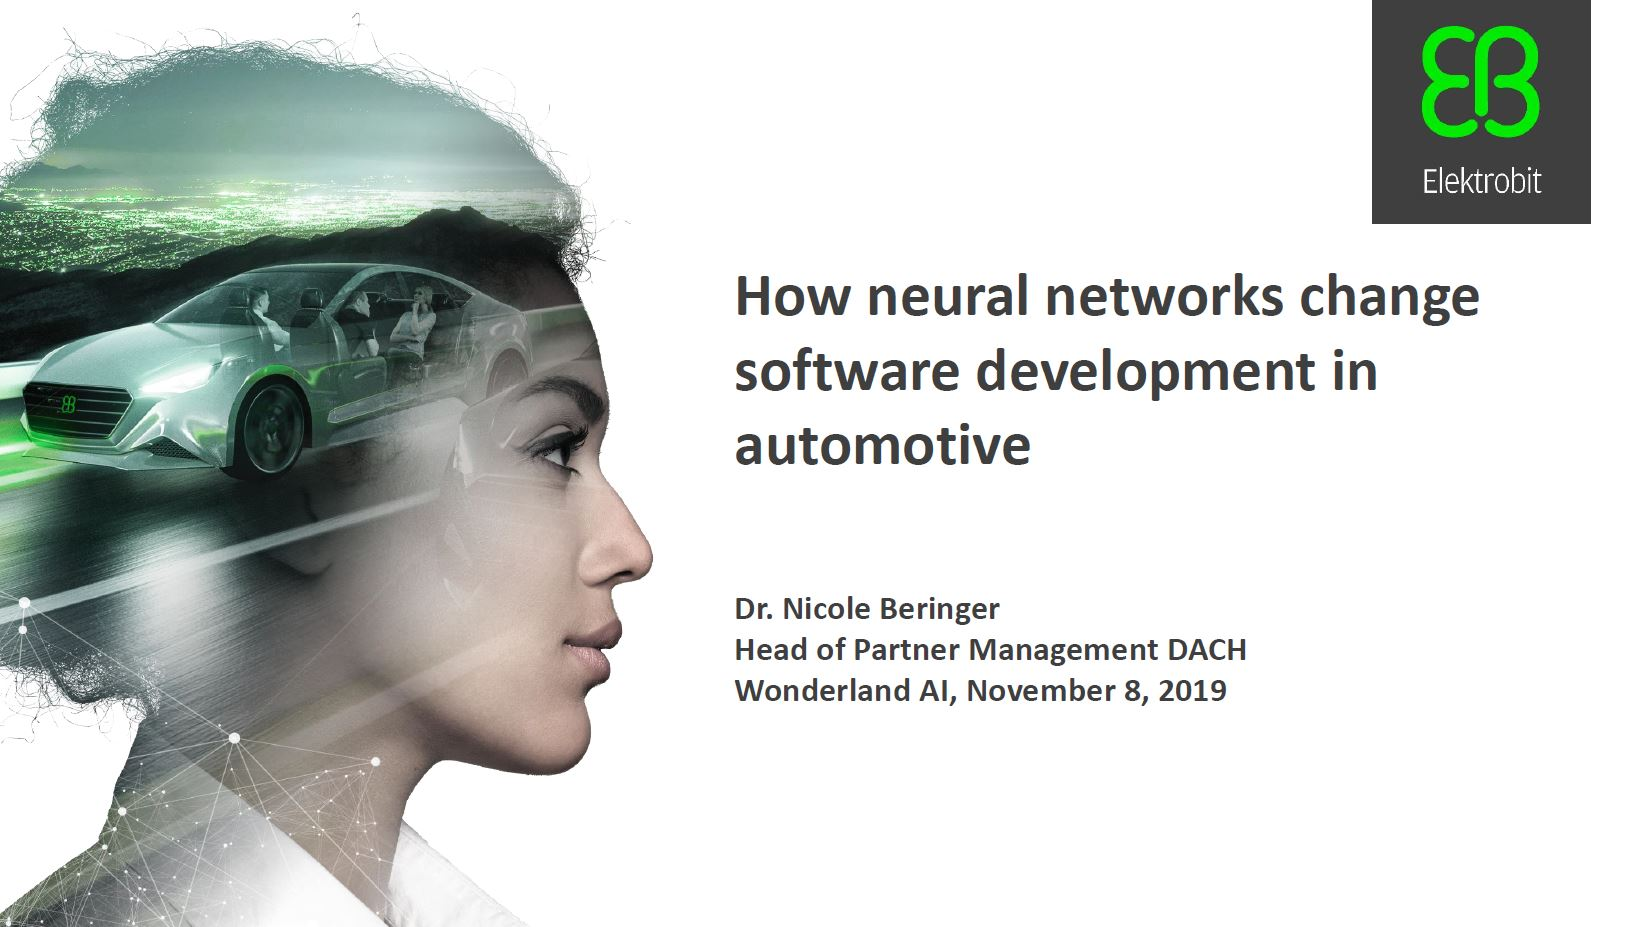 How neural networks change software development in automotive